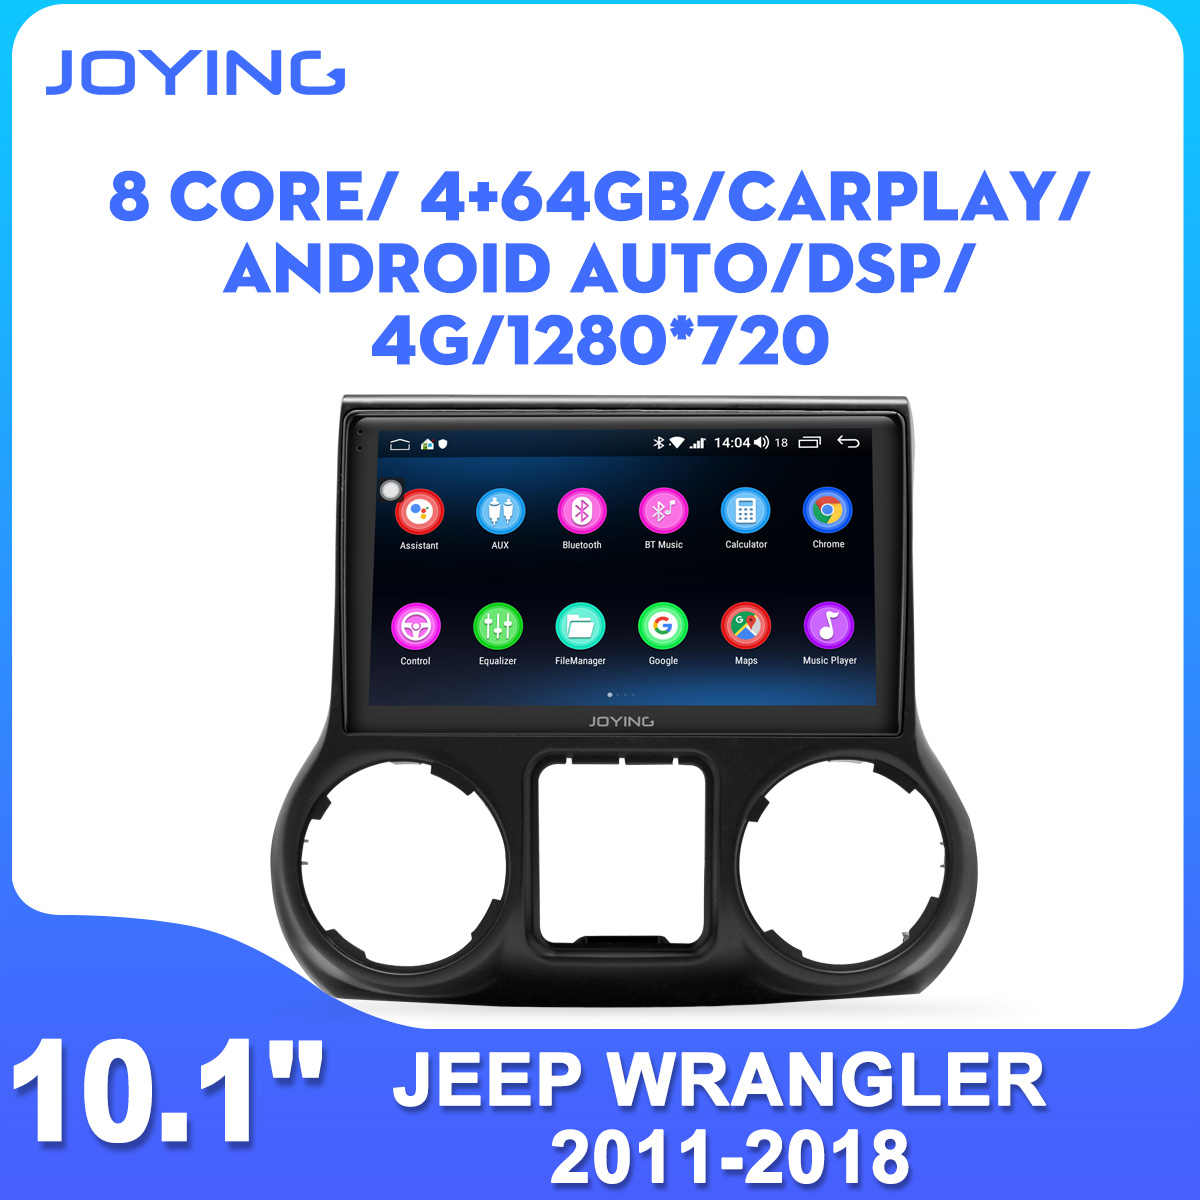 JOYING <font><b>10</b></font> inch head unit Android 8.1 car radio player stereo audio GPS Navigation for Jeep Wrangler 2011-2018 (left drive) DSP image